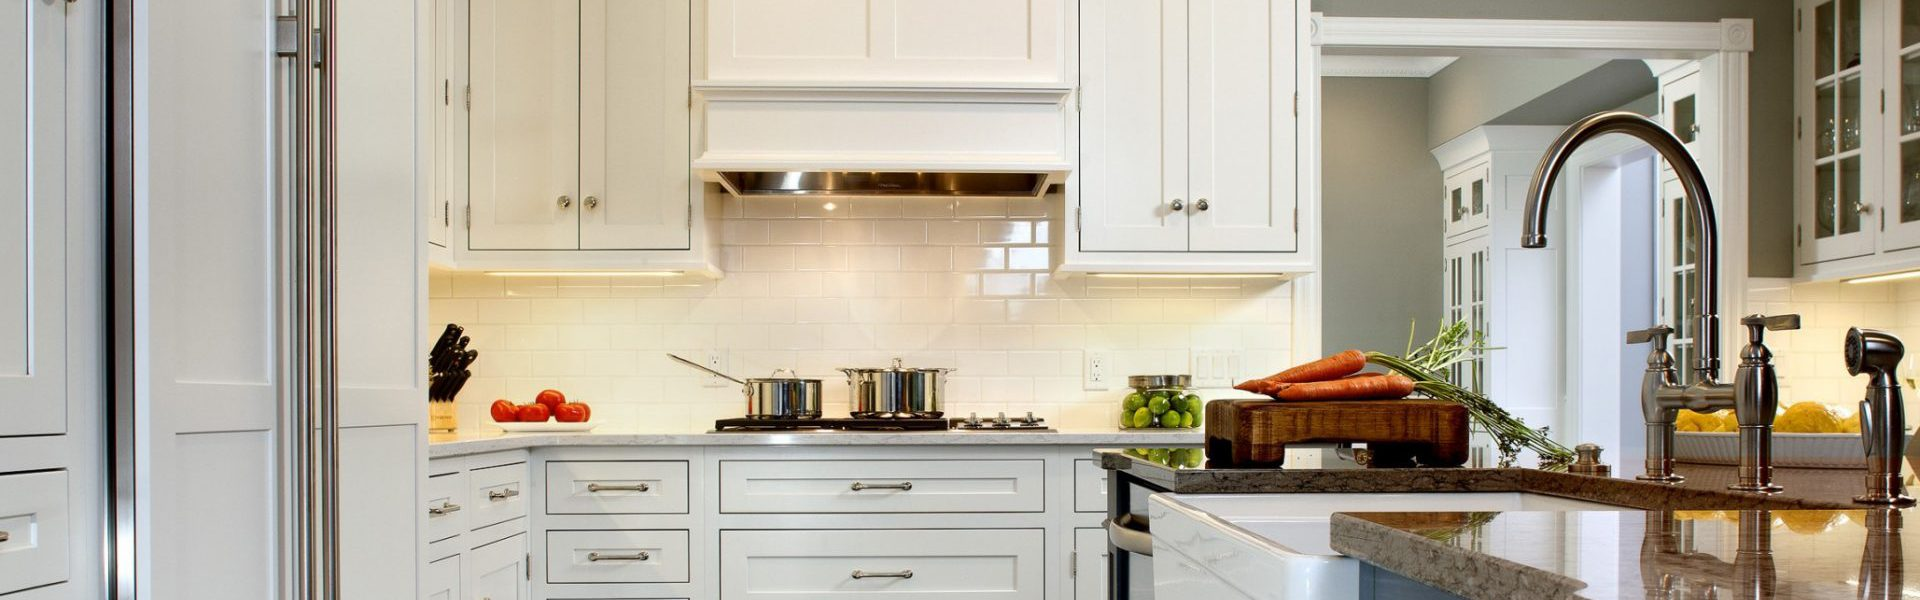 Apple Valley Kitchen Cabinets The Cabinet Store